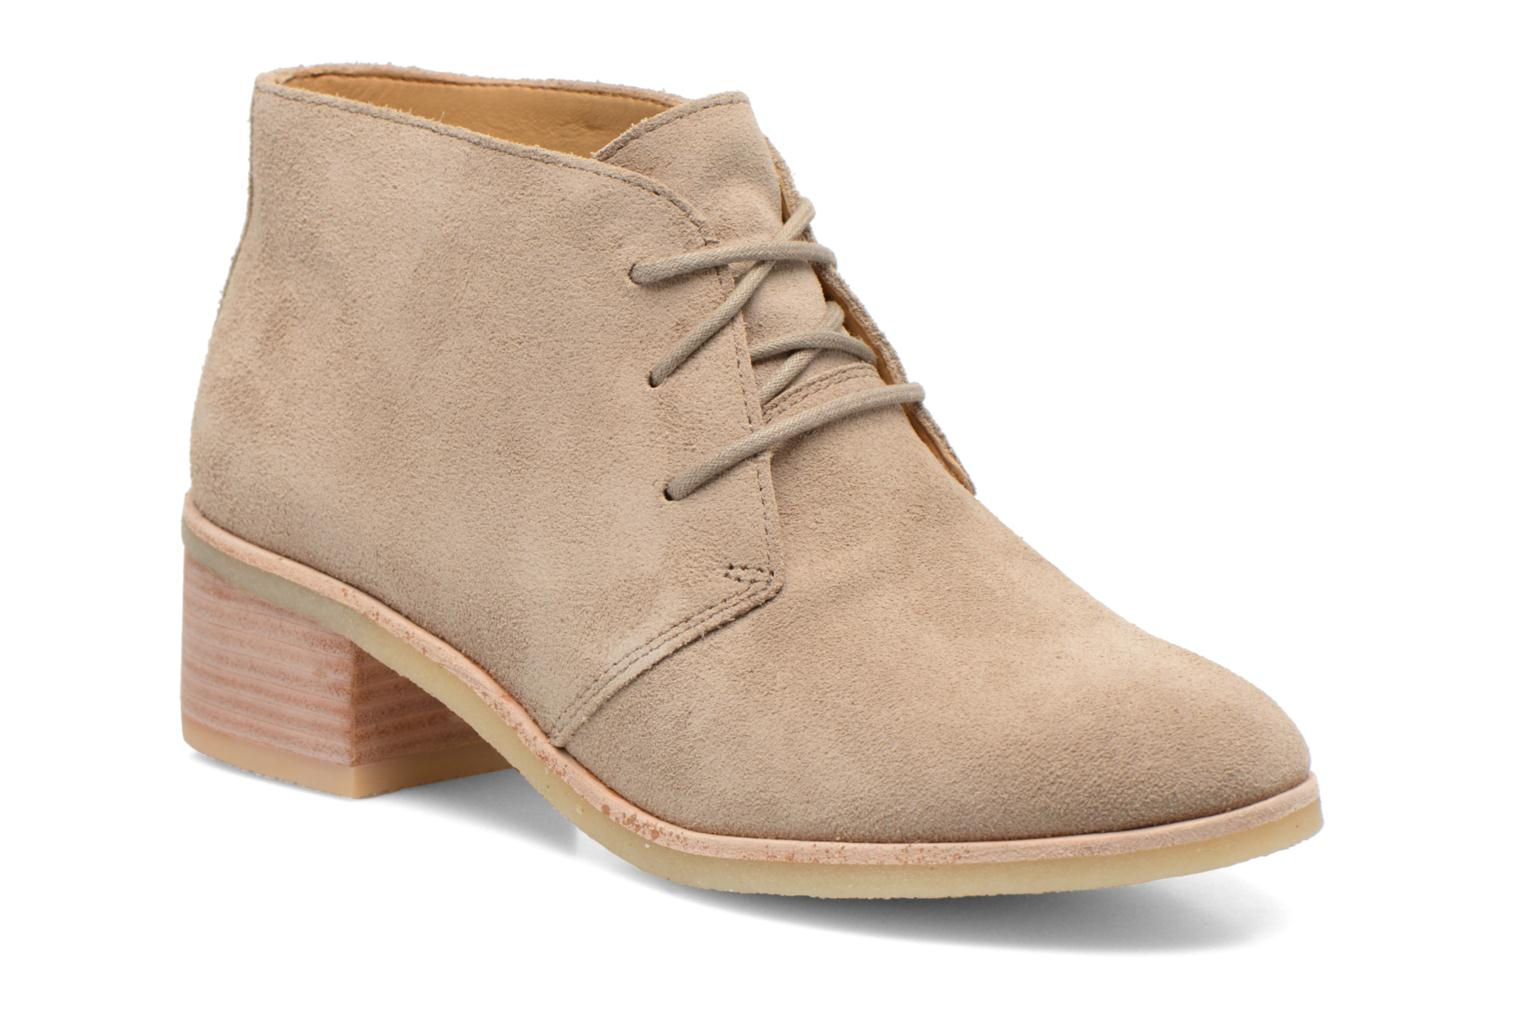 Clarks Originals Phenia Carnaby Lace-up Shoes Color: Beige